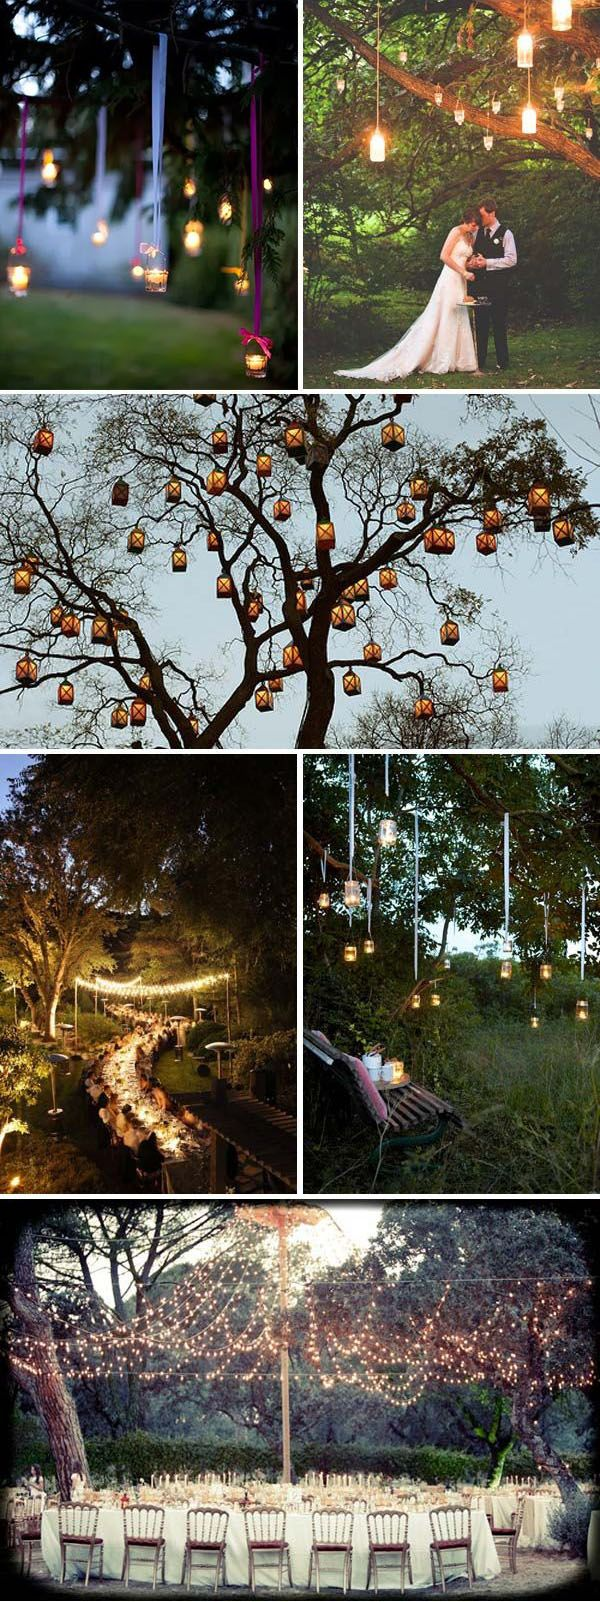 #wedding #mybigday hanging floating lanterns decorations for outdoor wedding ideas